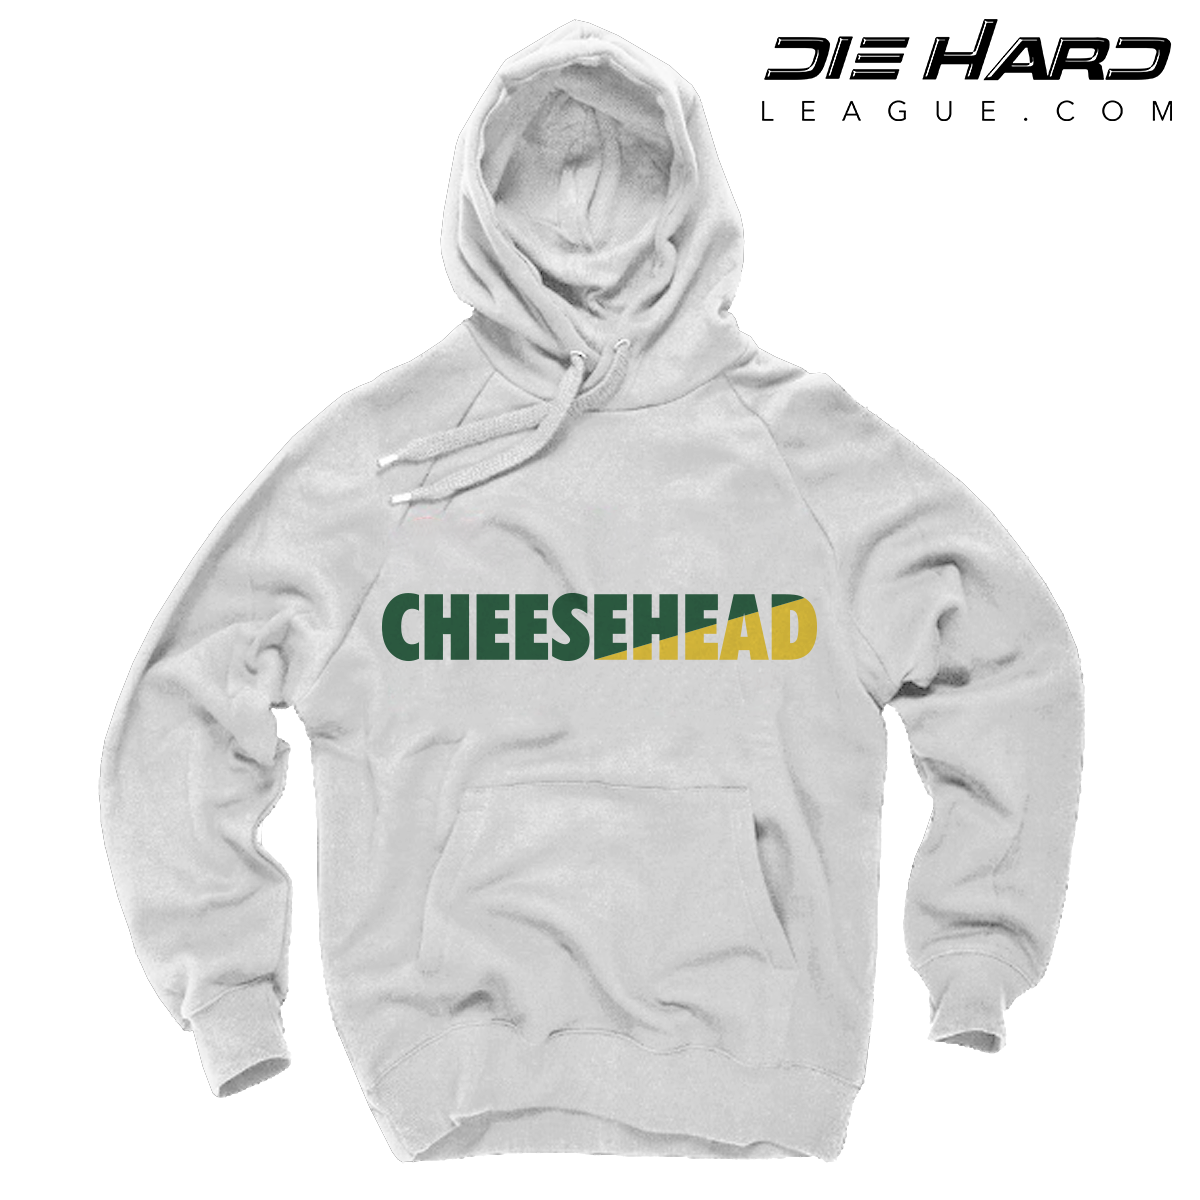 sports shoes 72365 356d3 Packers Hoodie - Cheese Head White Hoodie